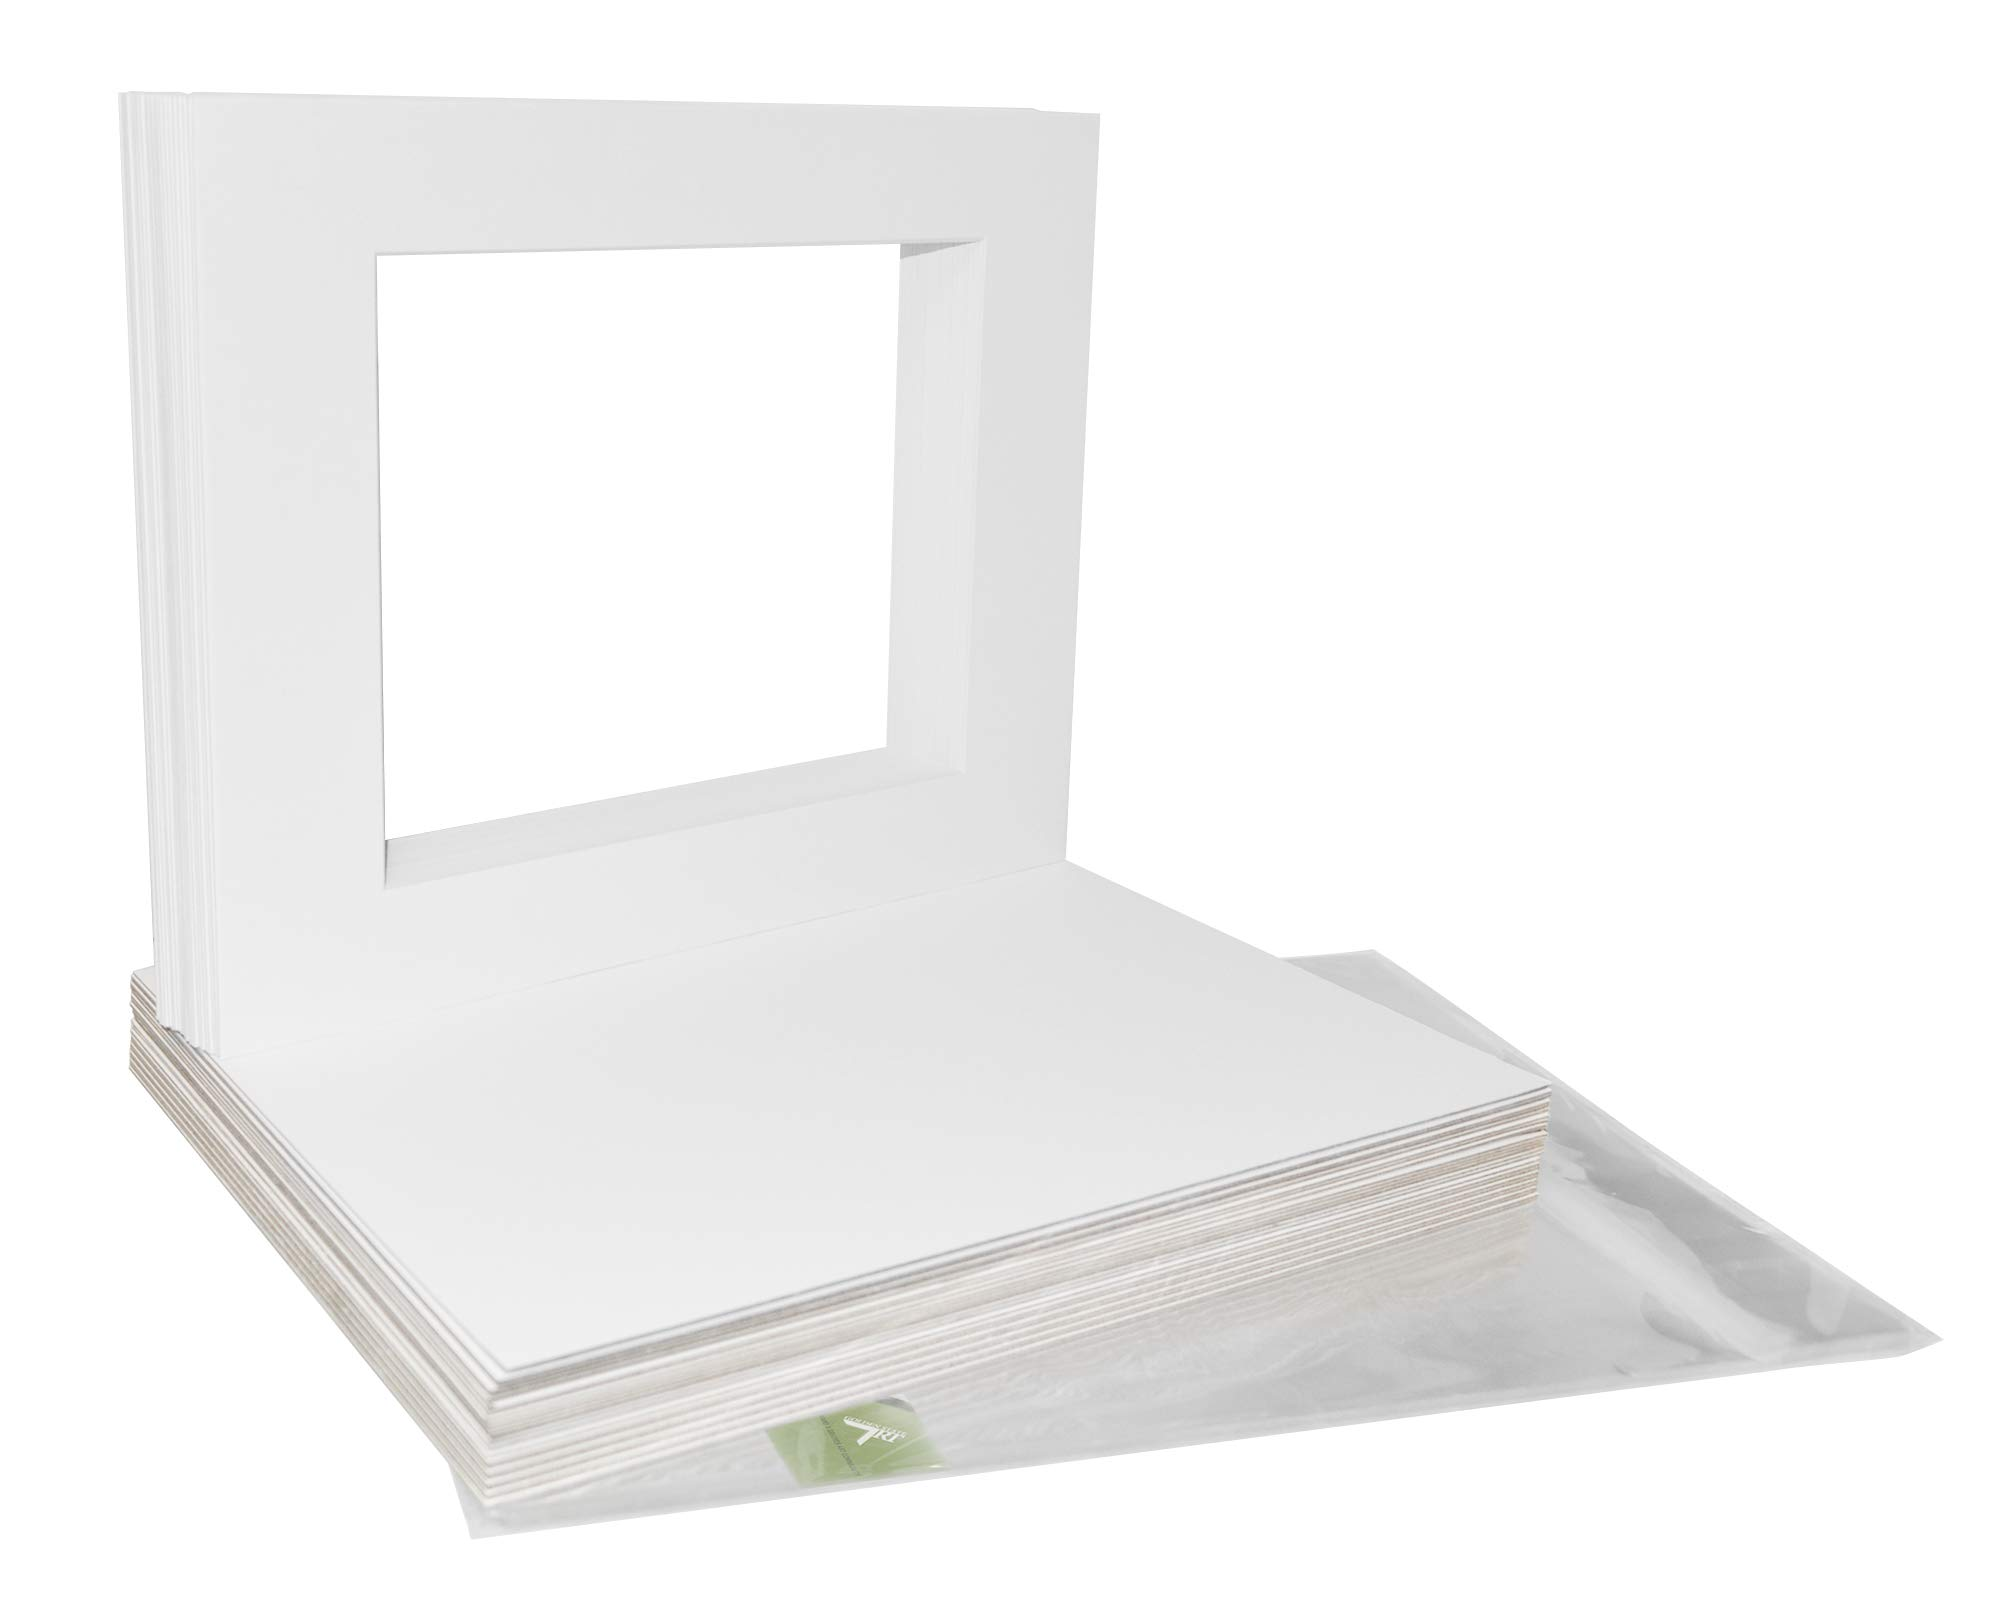 Golden State Art Acid Free, Pack of 25 11x14 White Picture Mats Mattes with White Core Bevel Cut for 8x10 Photo + Backing + Bags by Golden State Art